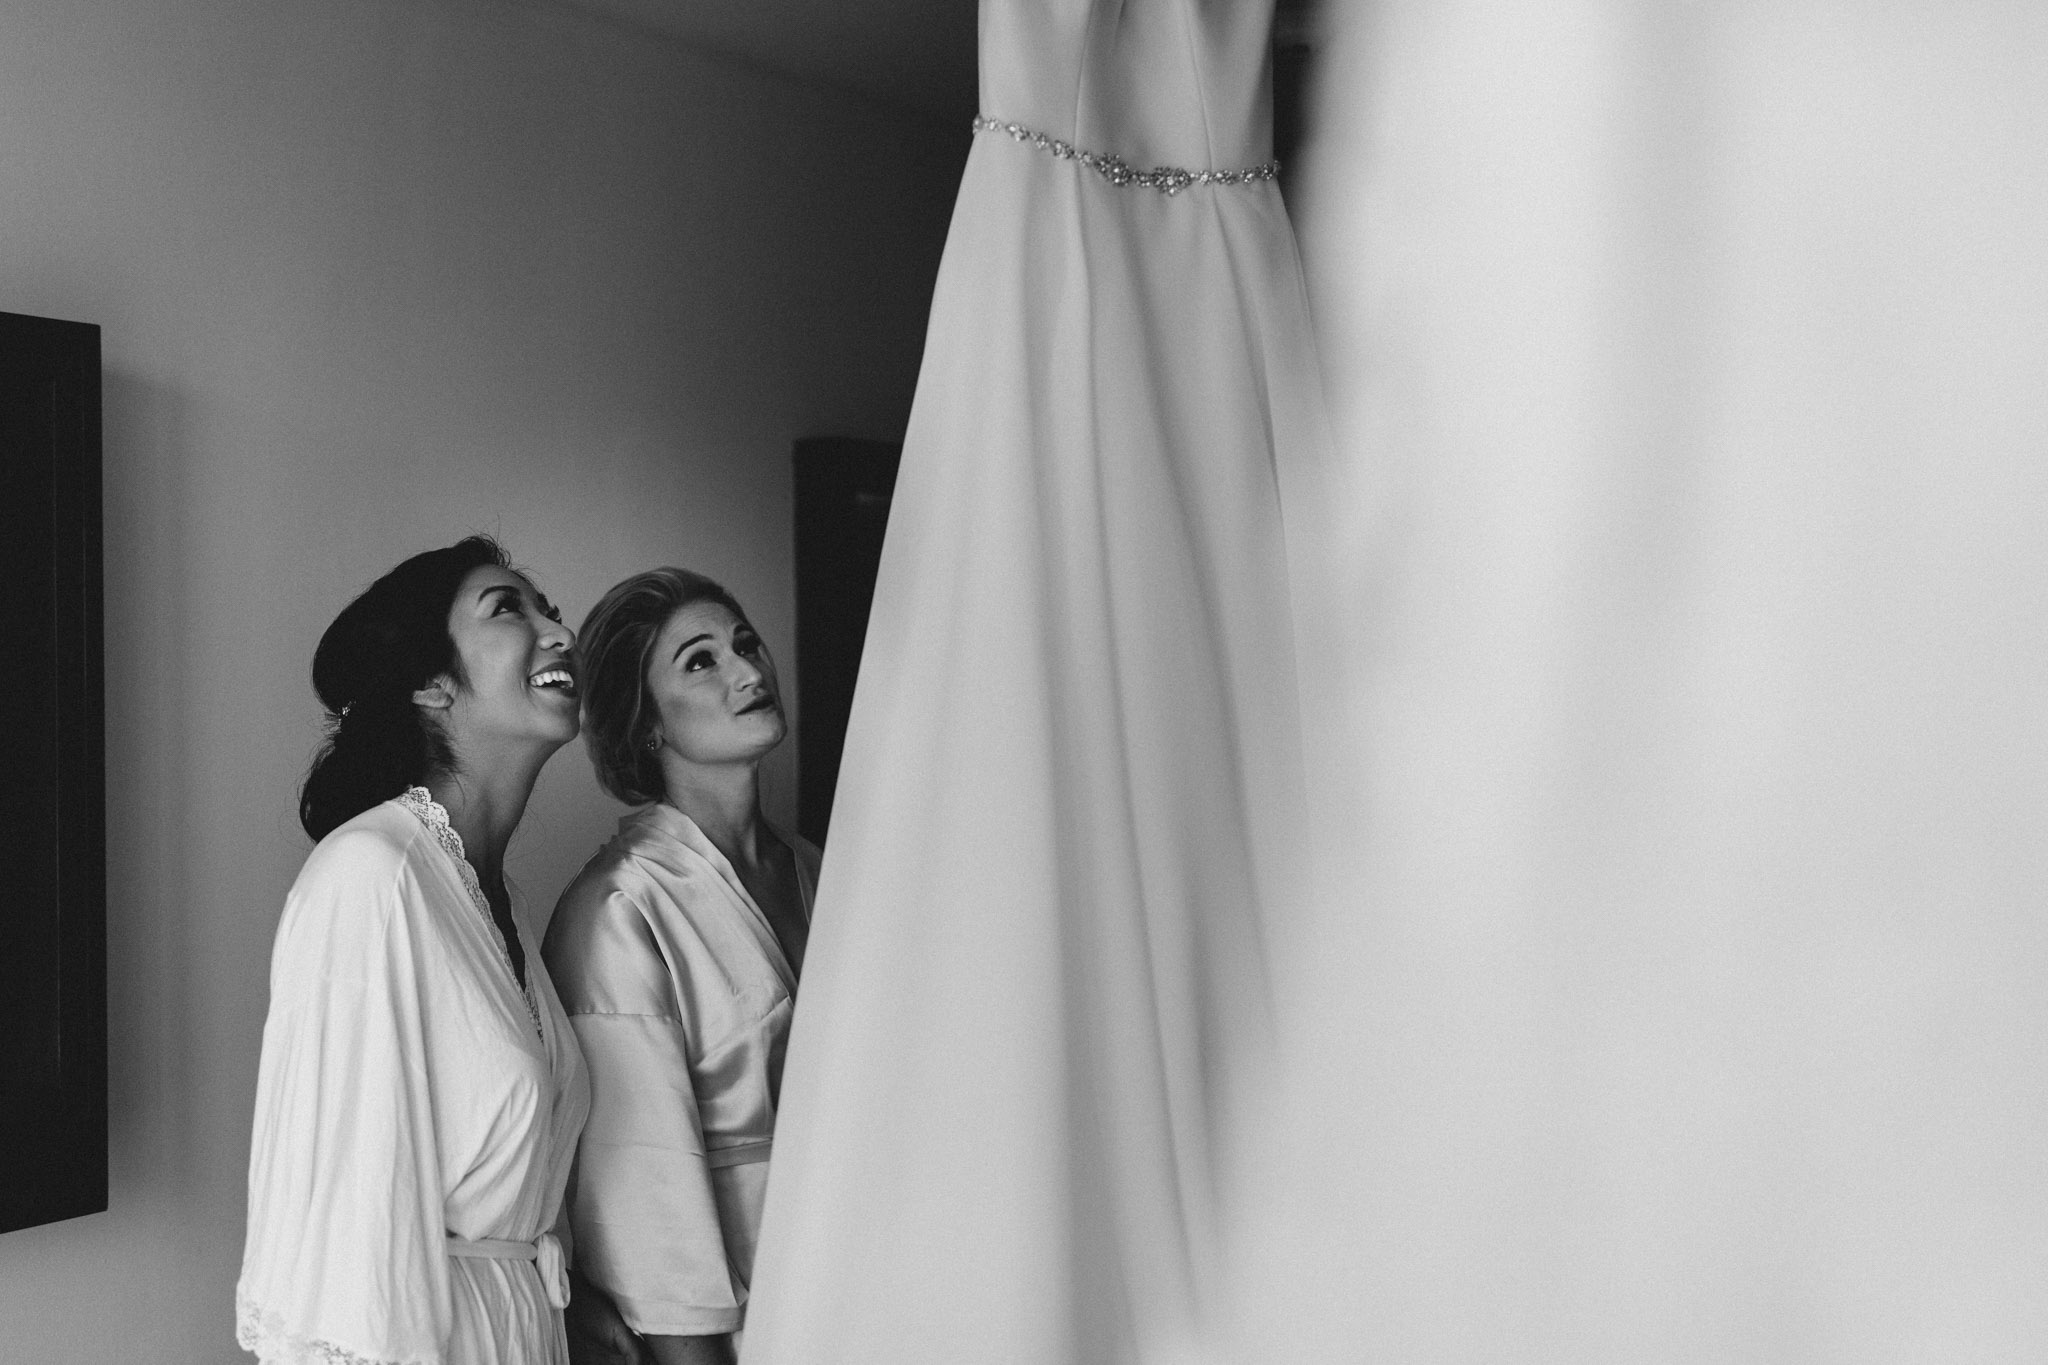 Cancun Mexico Wedding - admiring the dress